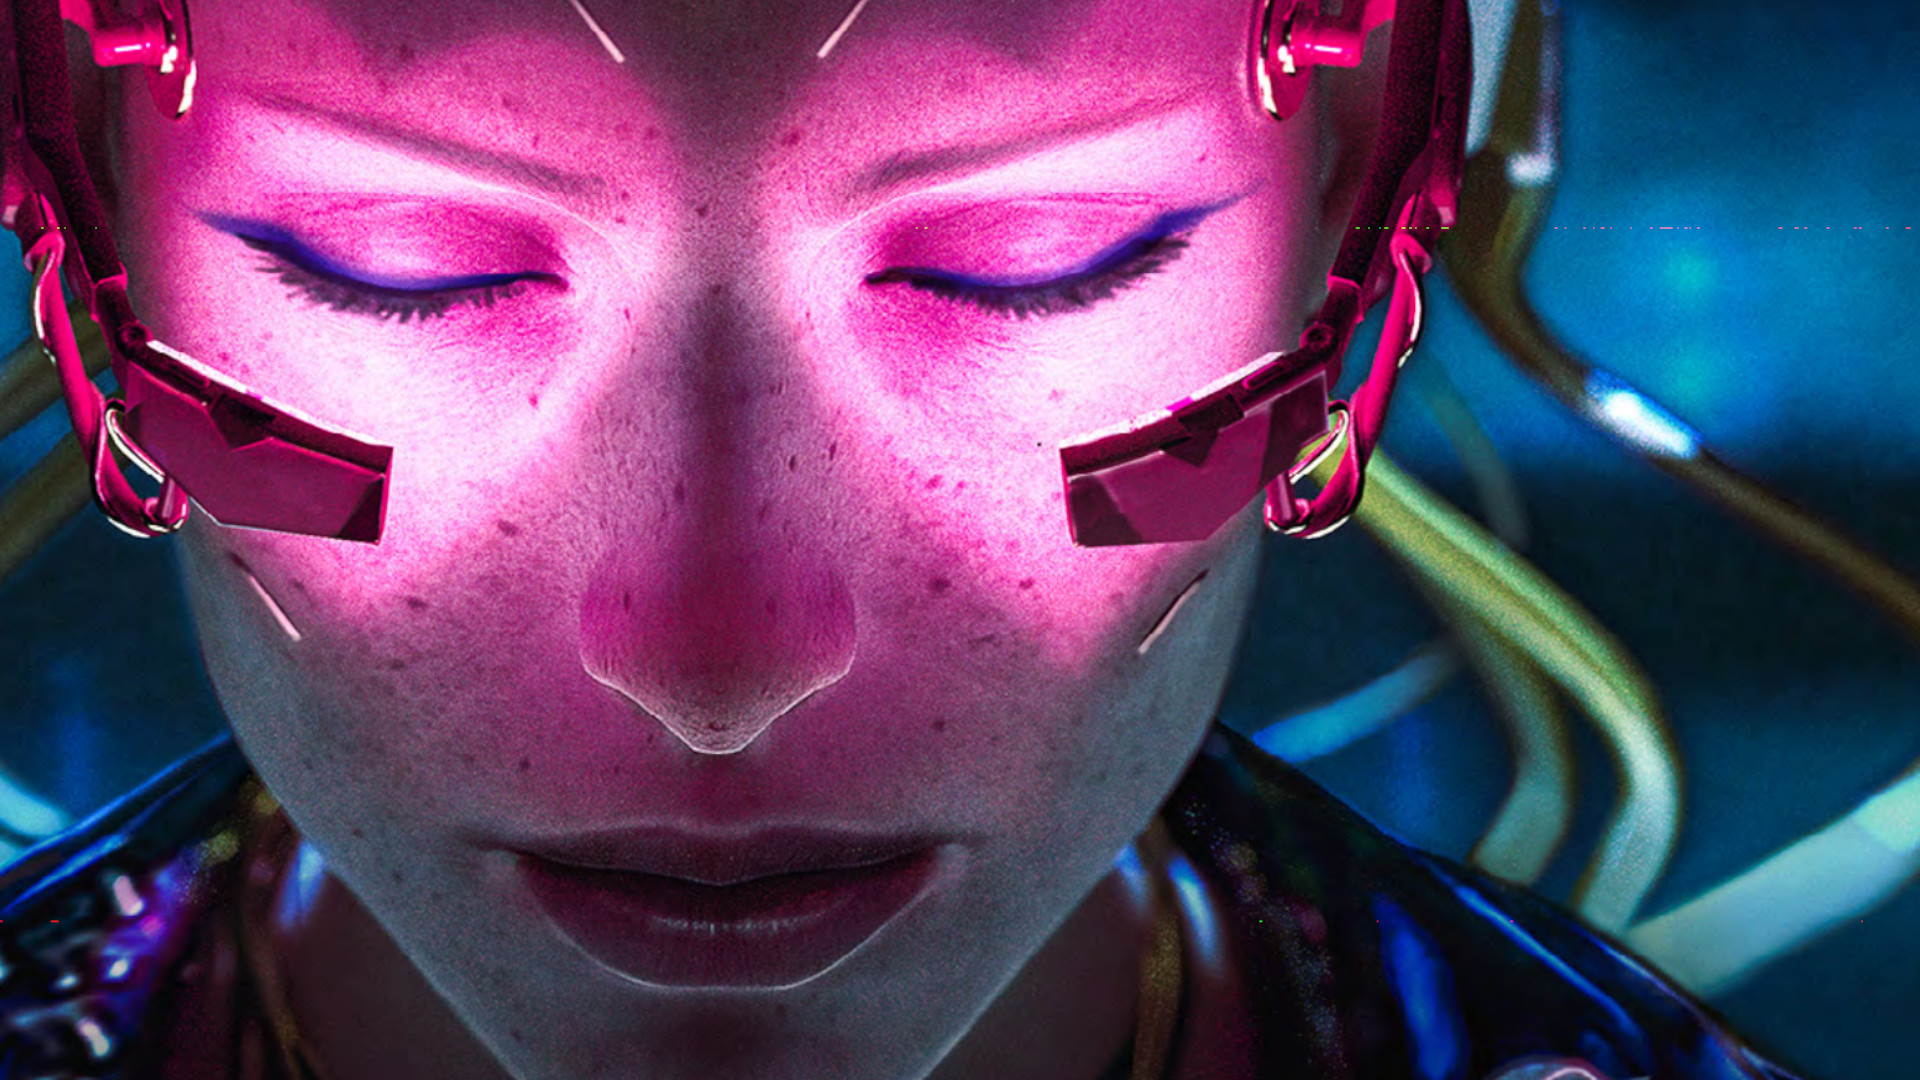 """CD Projekt """"intends to release Cyberpunk 2077 in September"""" despite """"these troubled times"""""""